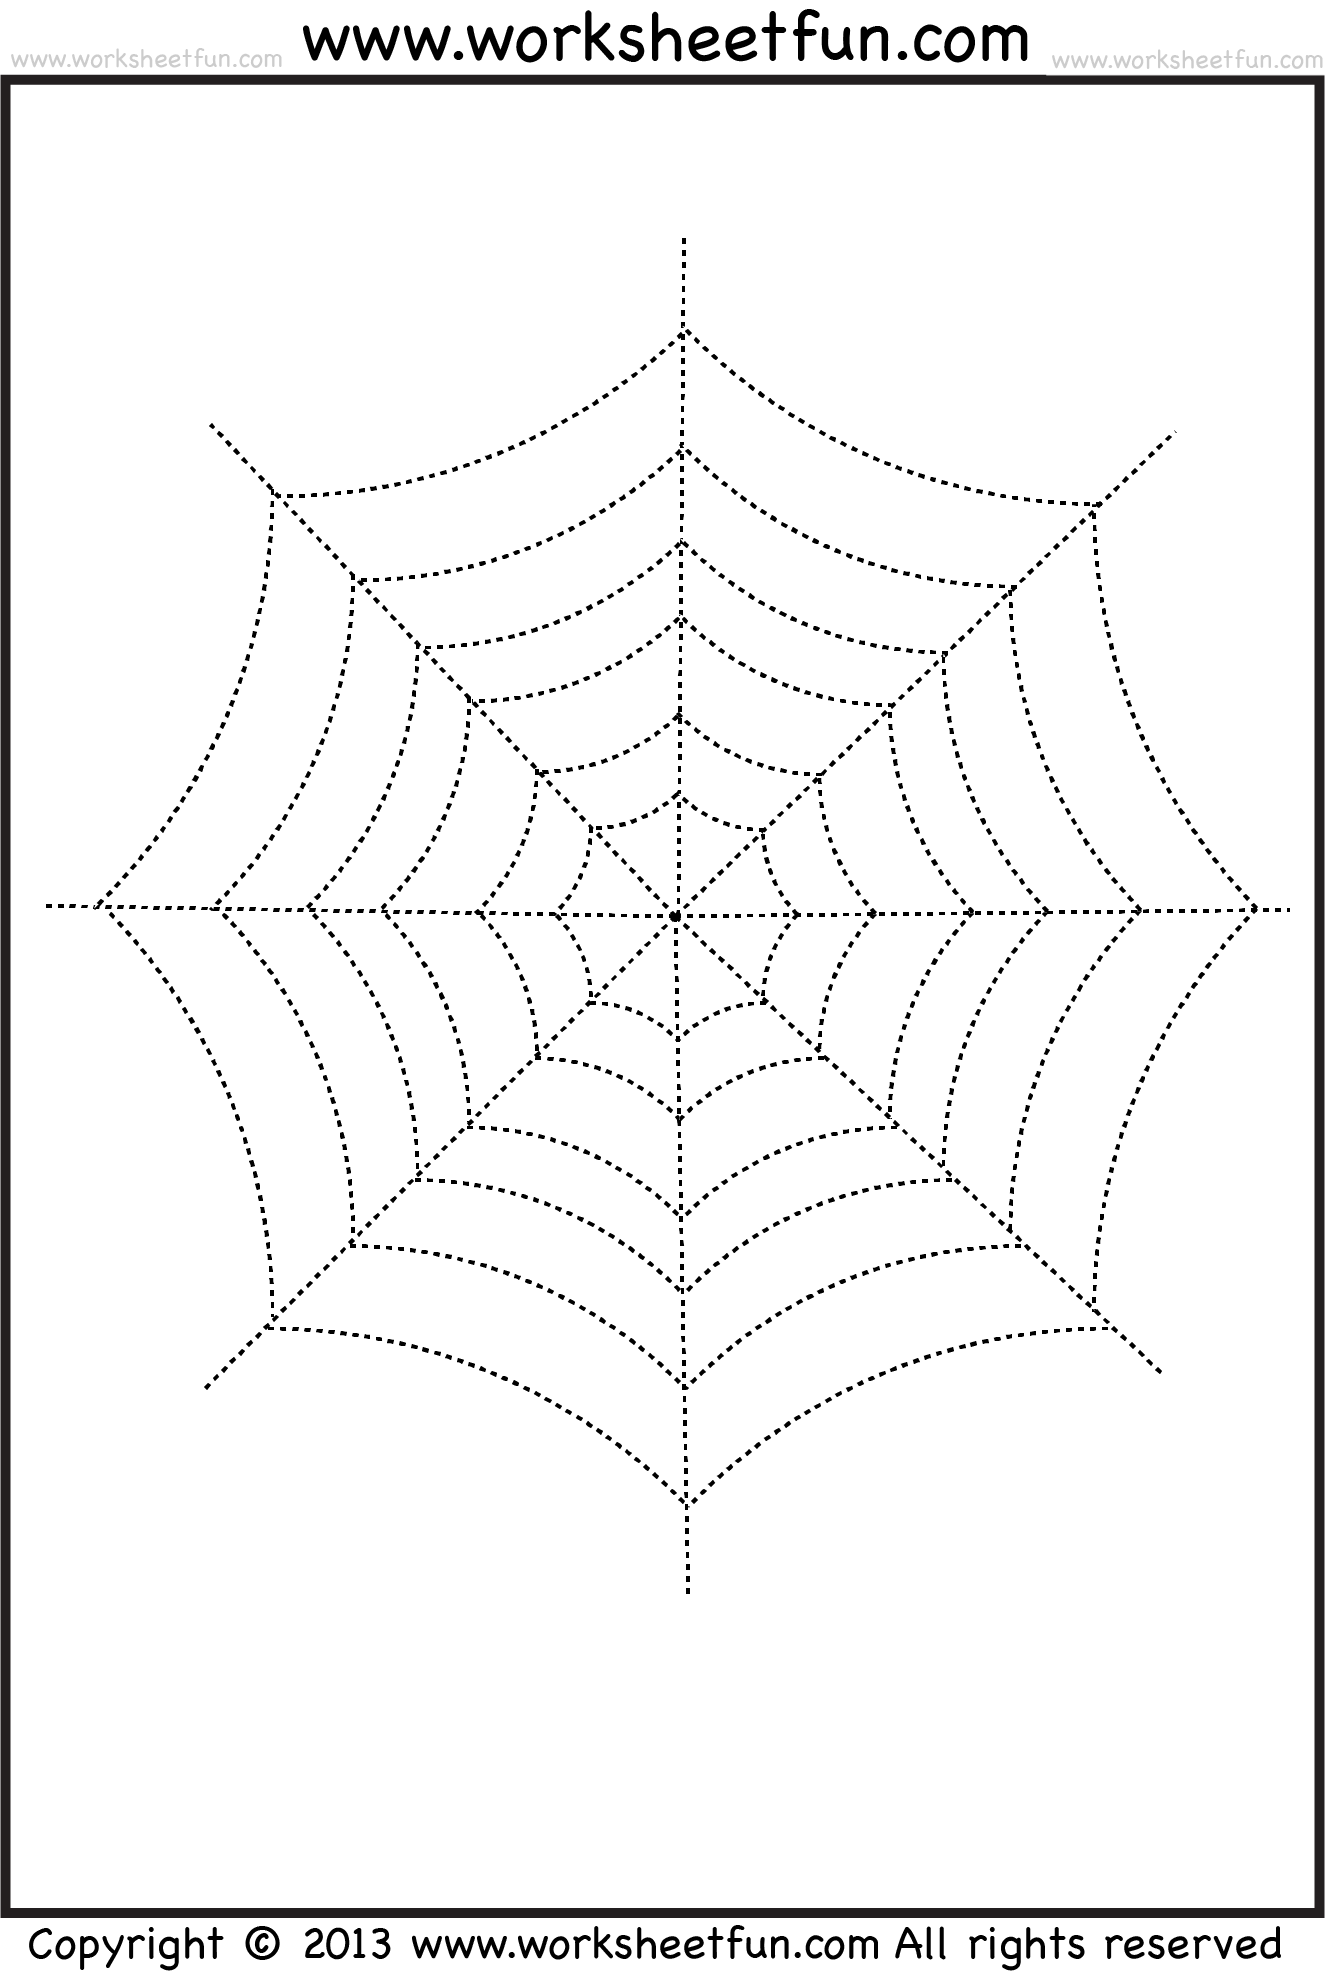 Spider Web Tracing And Coloring 2 Halloween Worksheets Free Printable Worksheets Worksheetfun